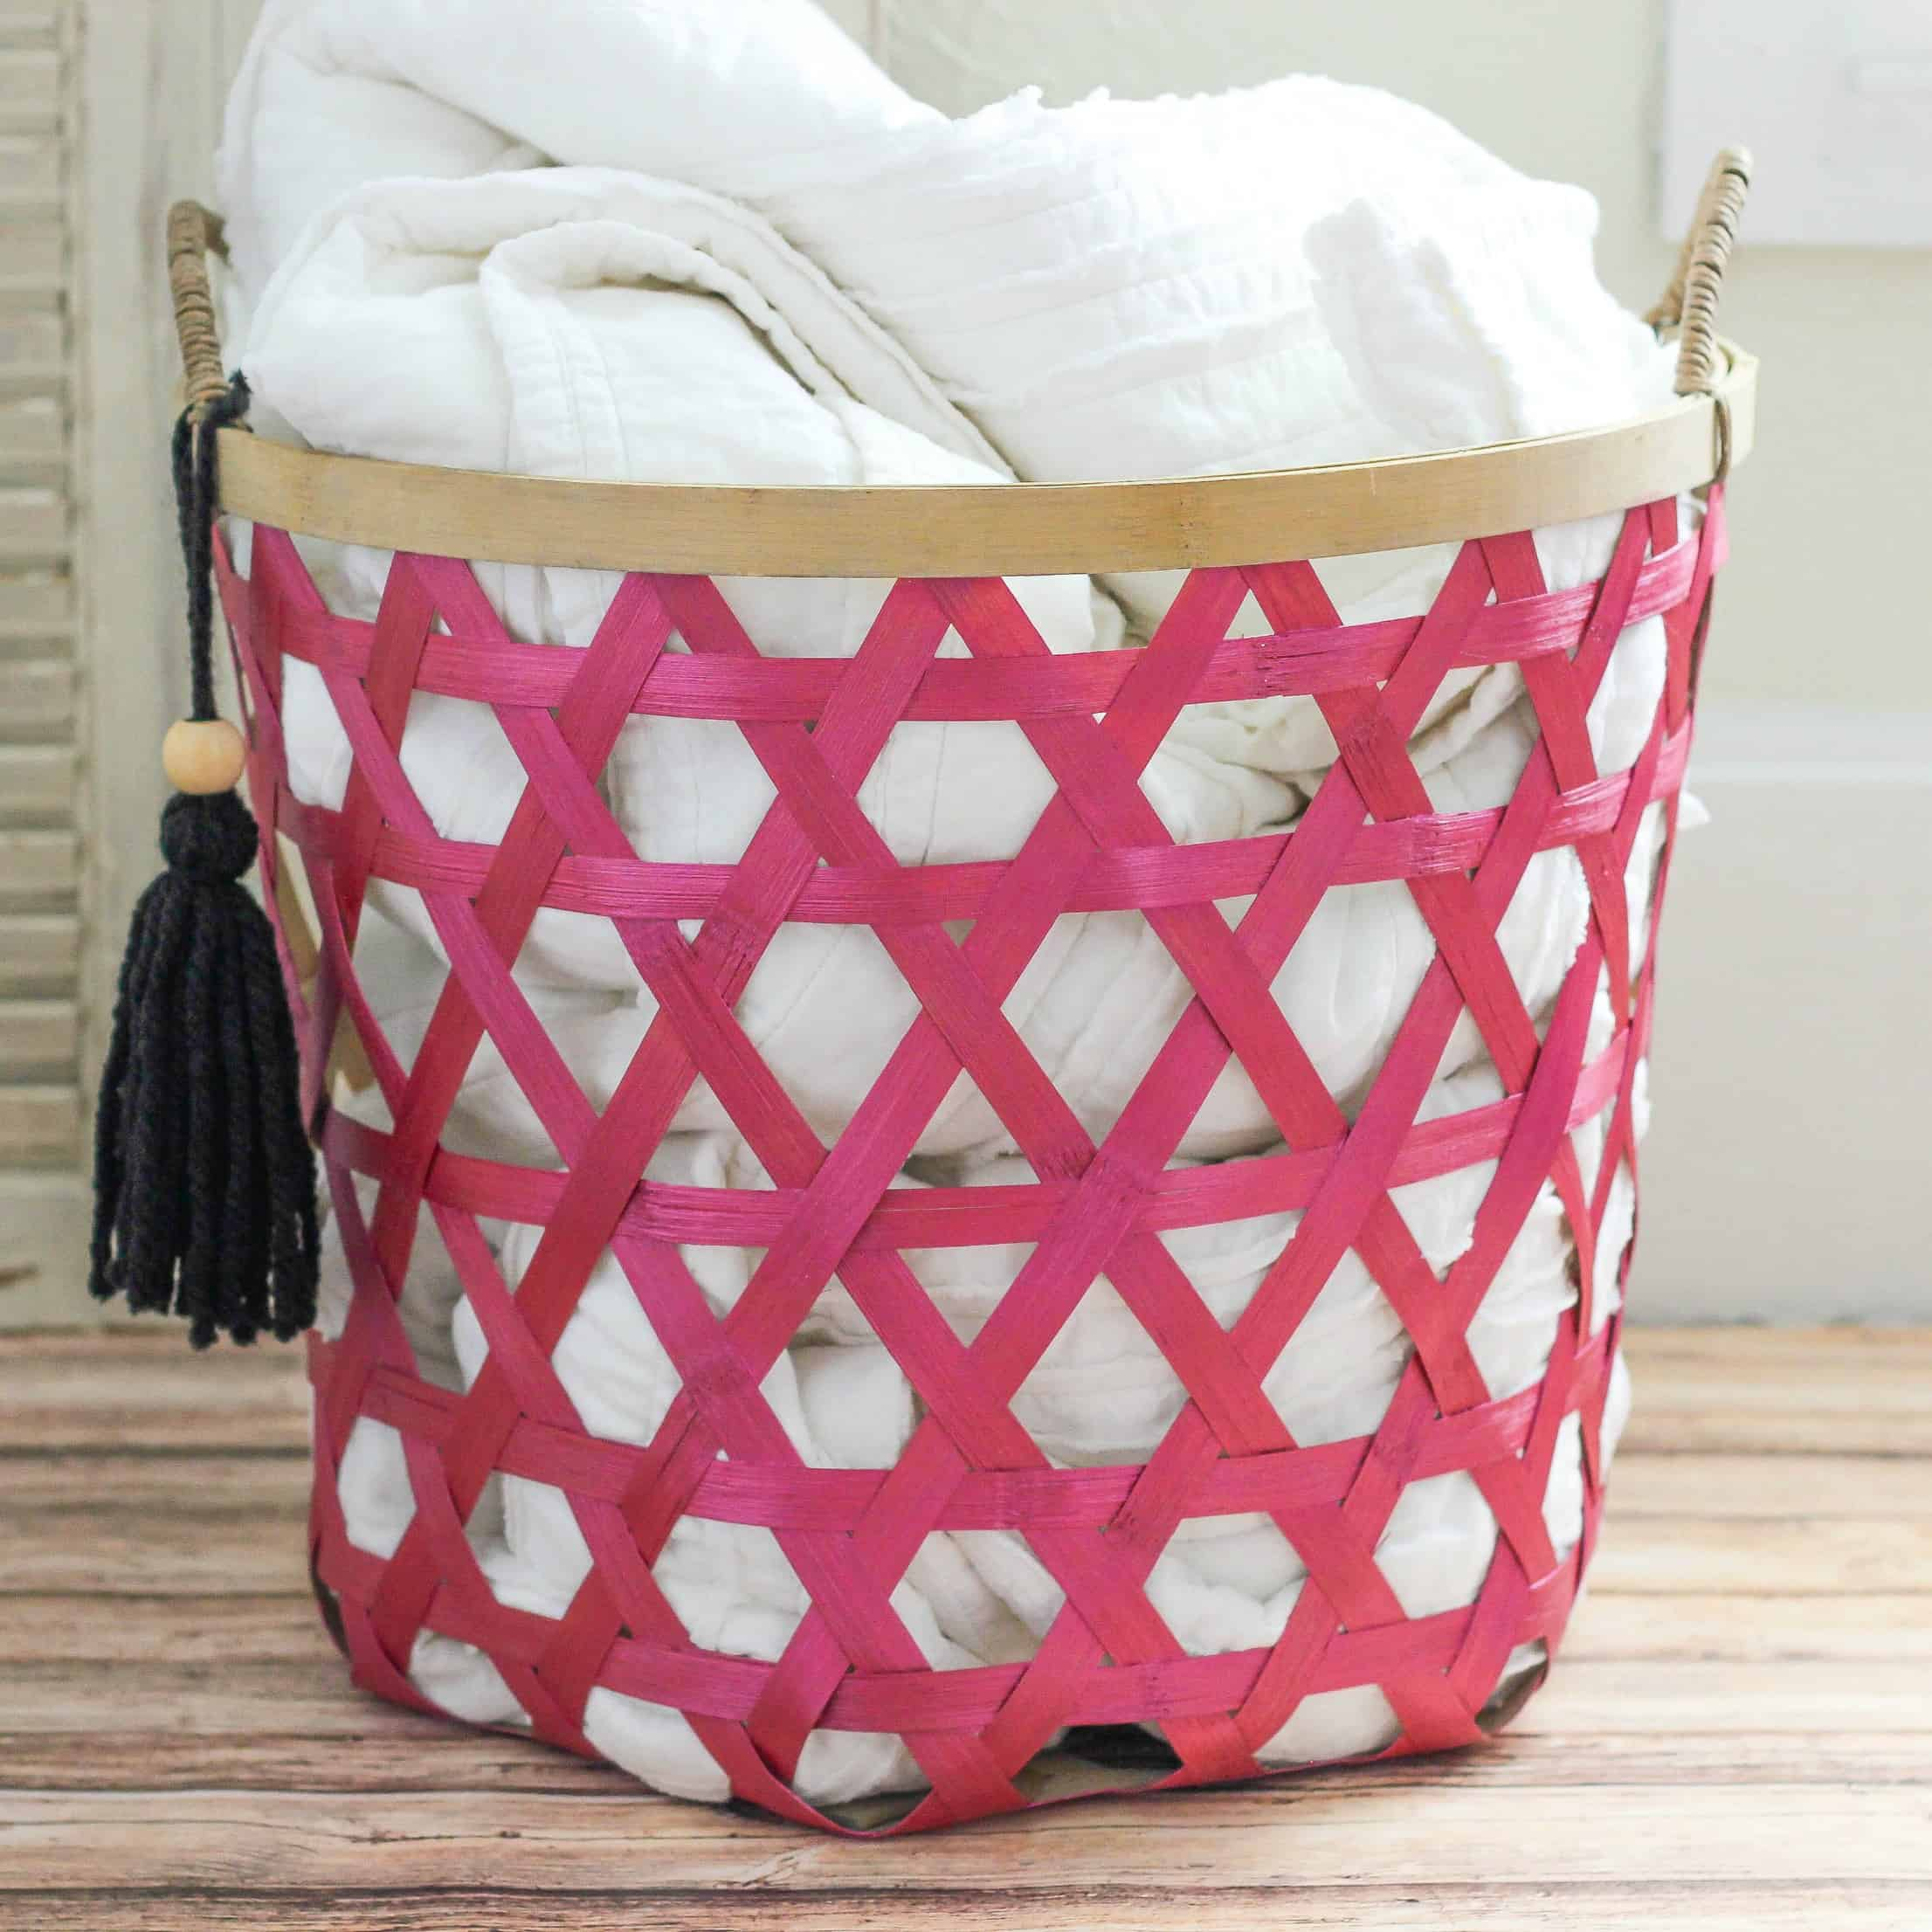 DIY Metallic Boho Basket